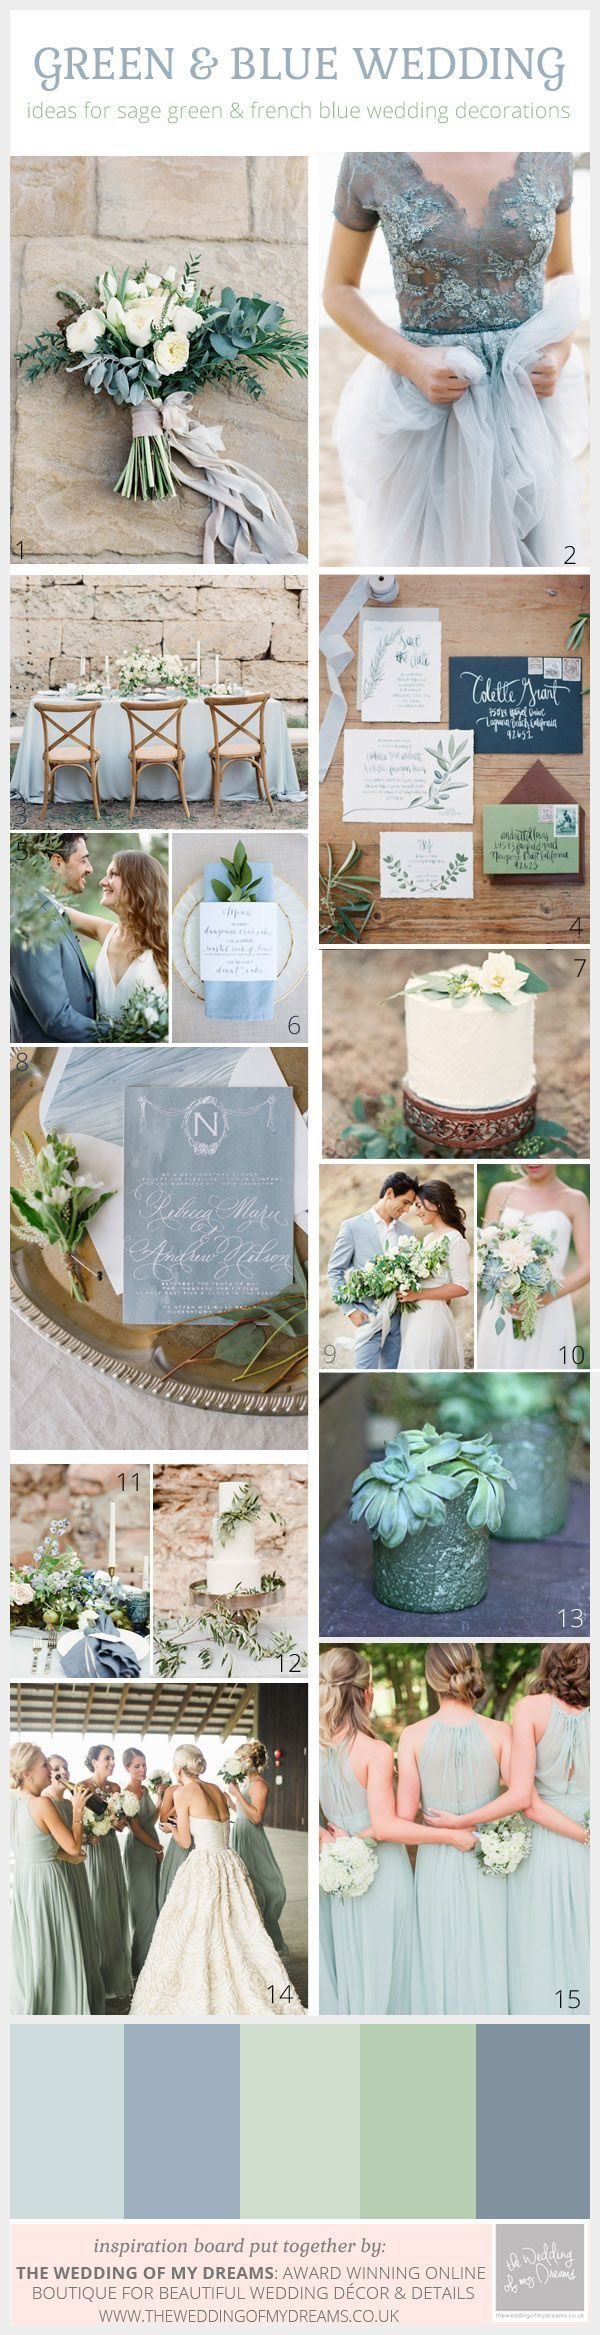 Ooh mixing the Grey Blue shades with Sage green is a fabulous idea ! All muted and so chic....